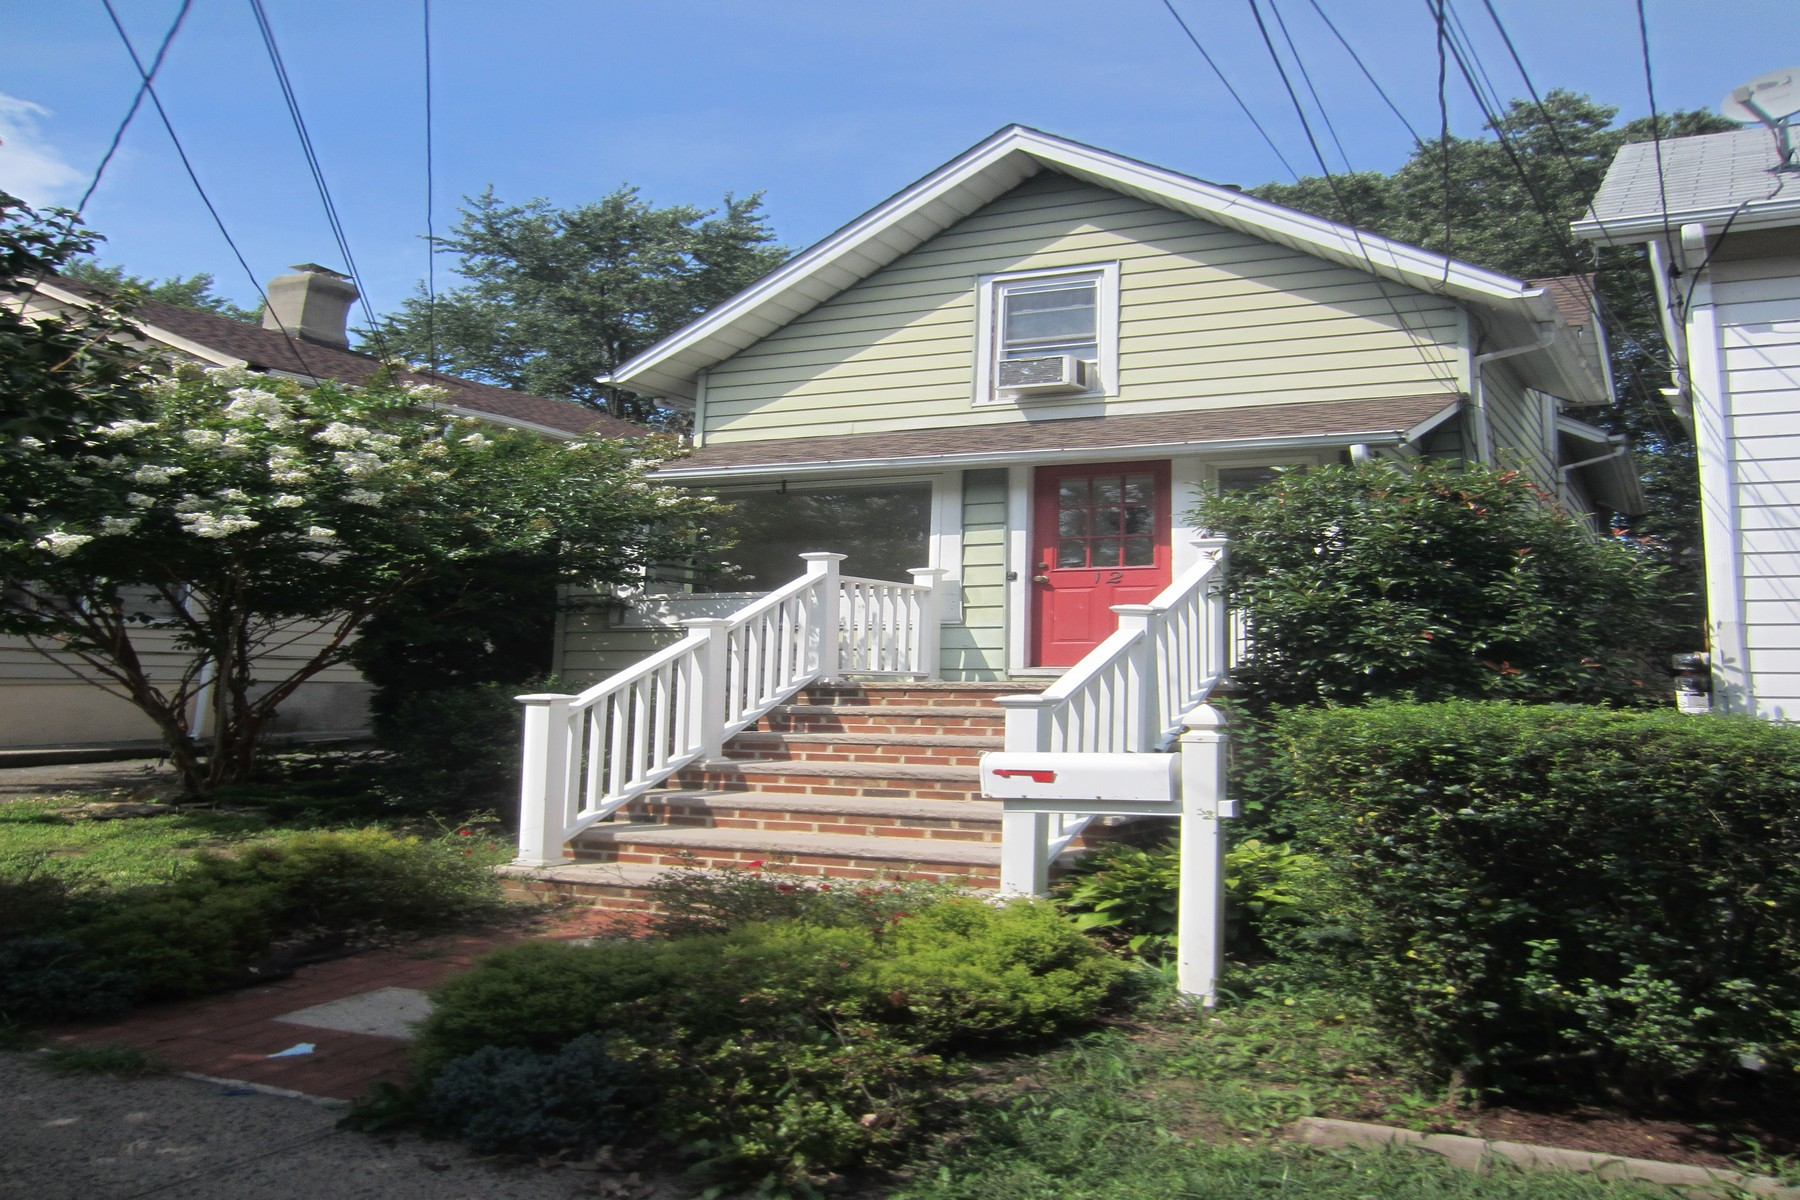 Property для того Аренда на Updated Colonial for Rent 12 Charles Street, Montclair, Нью-Джерси 07042 Соединенные Штаты